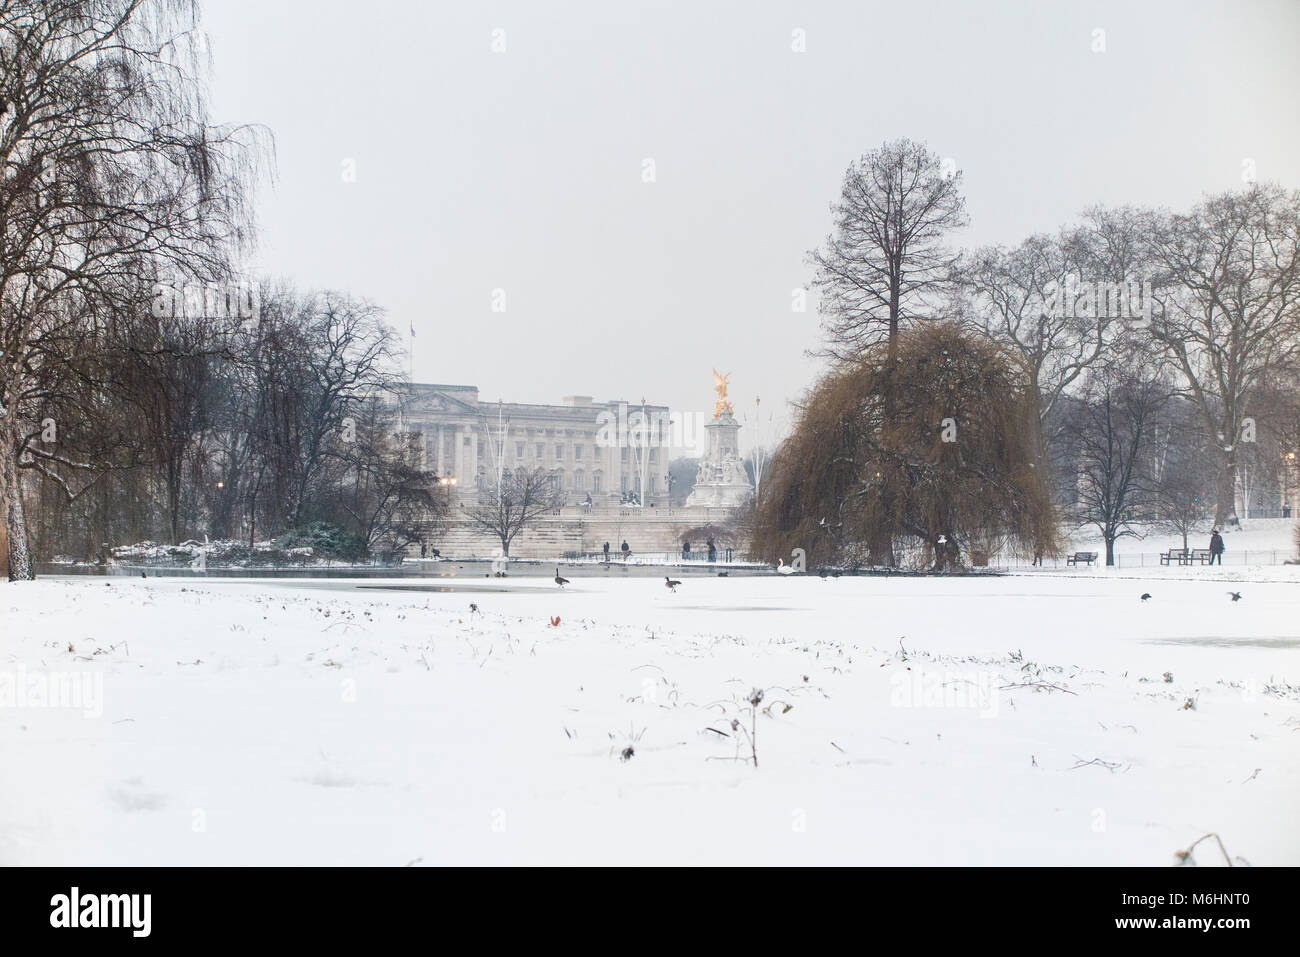 St James's Park and Buckingham Palace in the snow - Stock Image